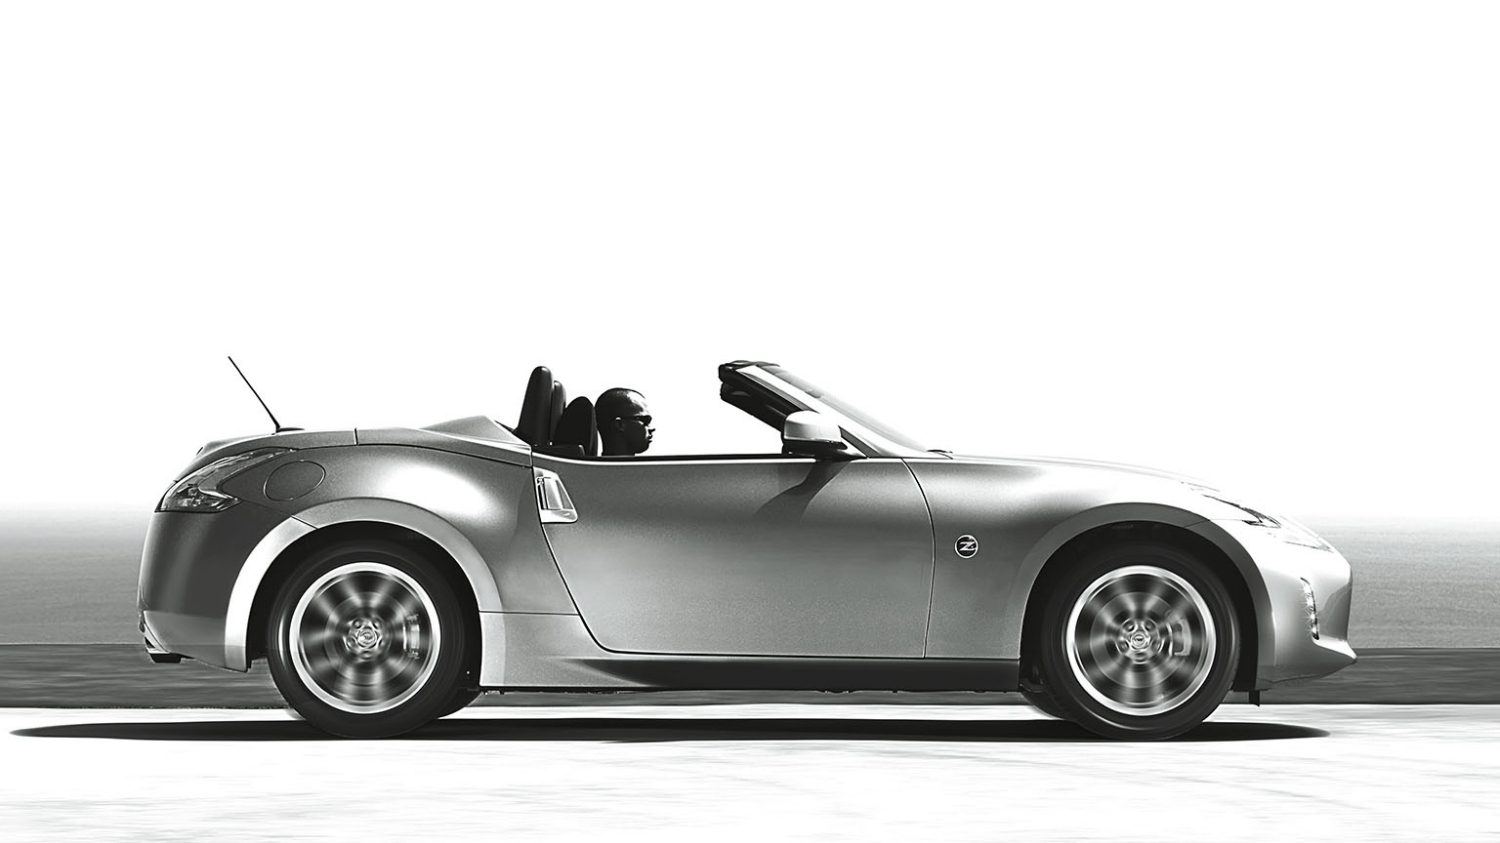 NISSAN 370Z ROADSTER – photo N&B – Vue de profil capote ouverte